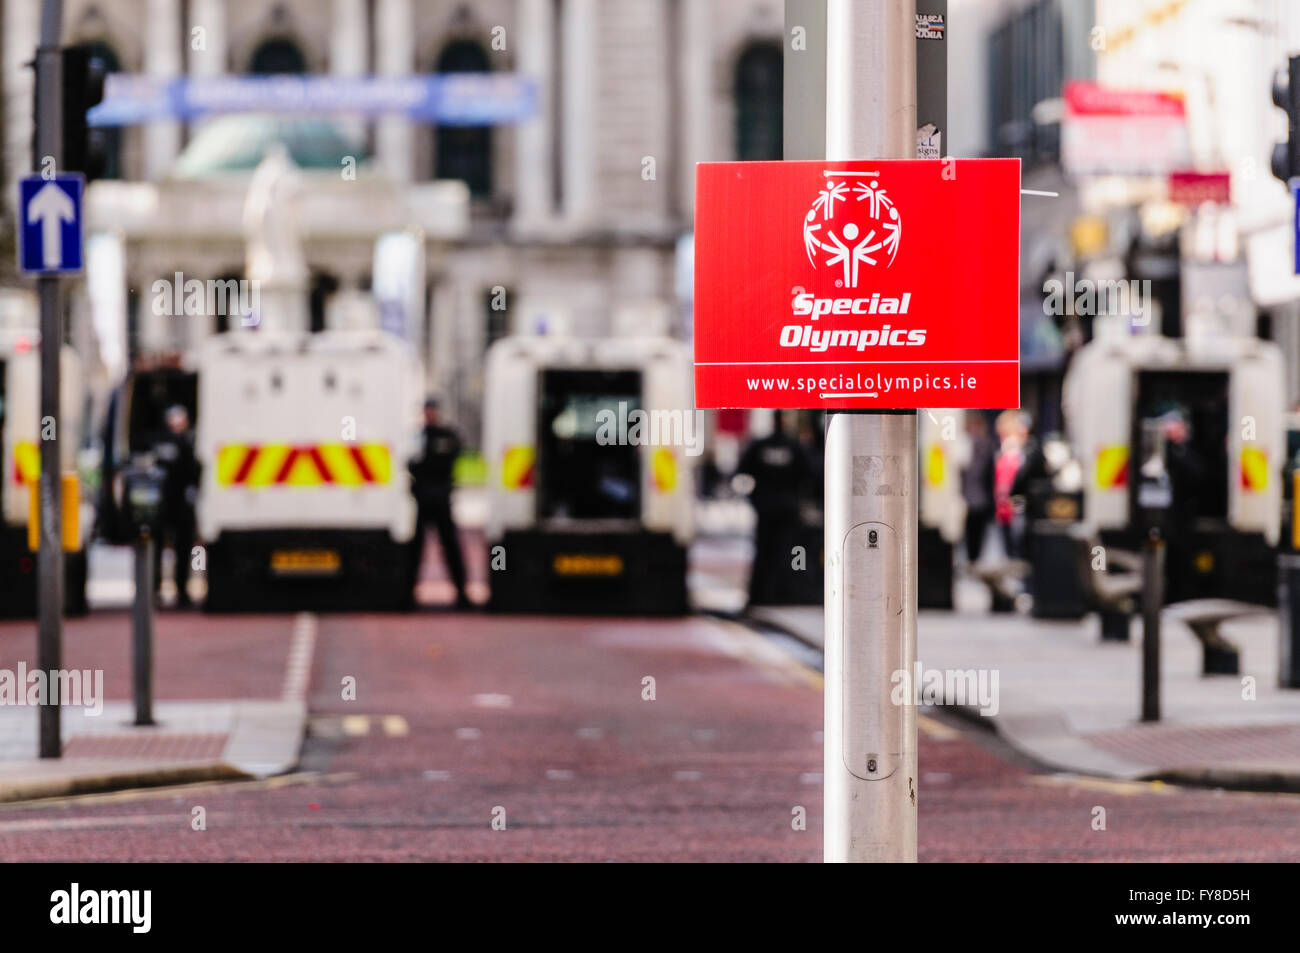 PSNI police officers with armoured landrovers block off Donegal Place in Belfast, where a Special Olympics sign - Stock Image